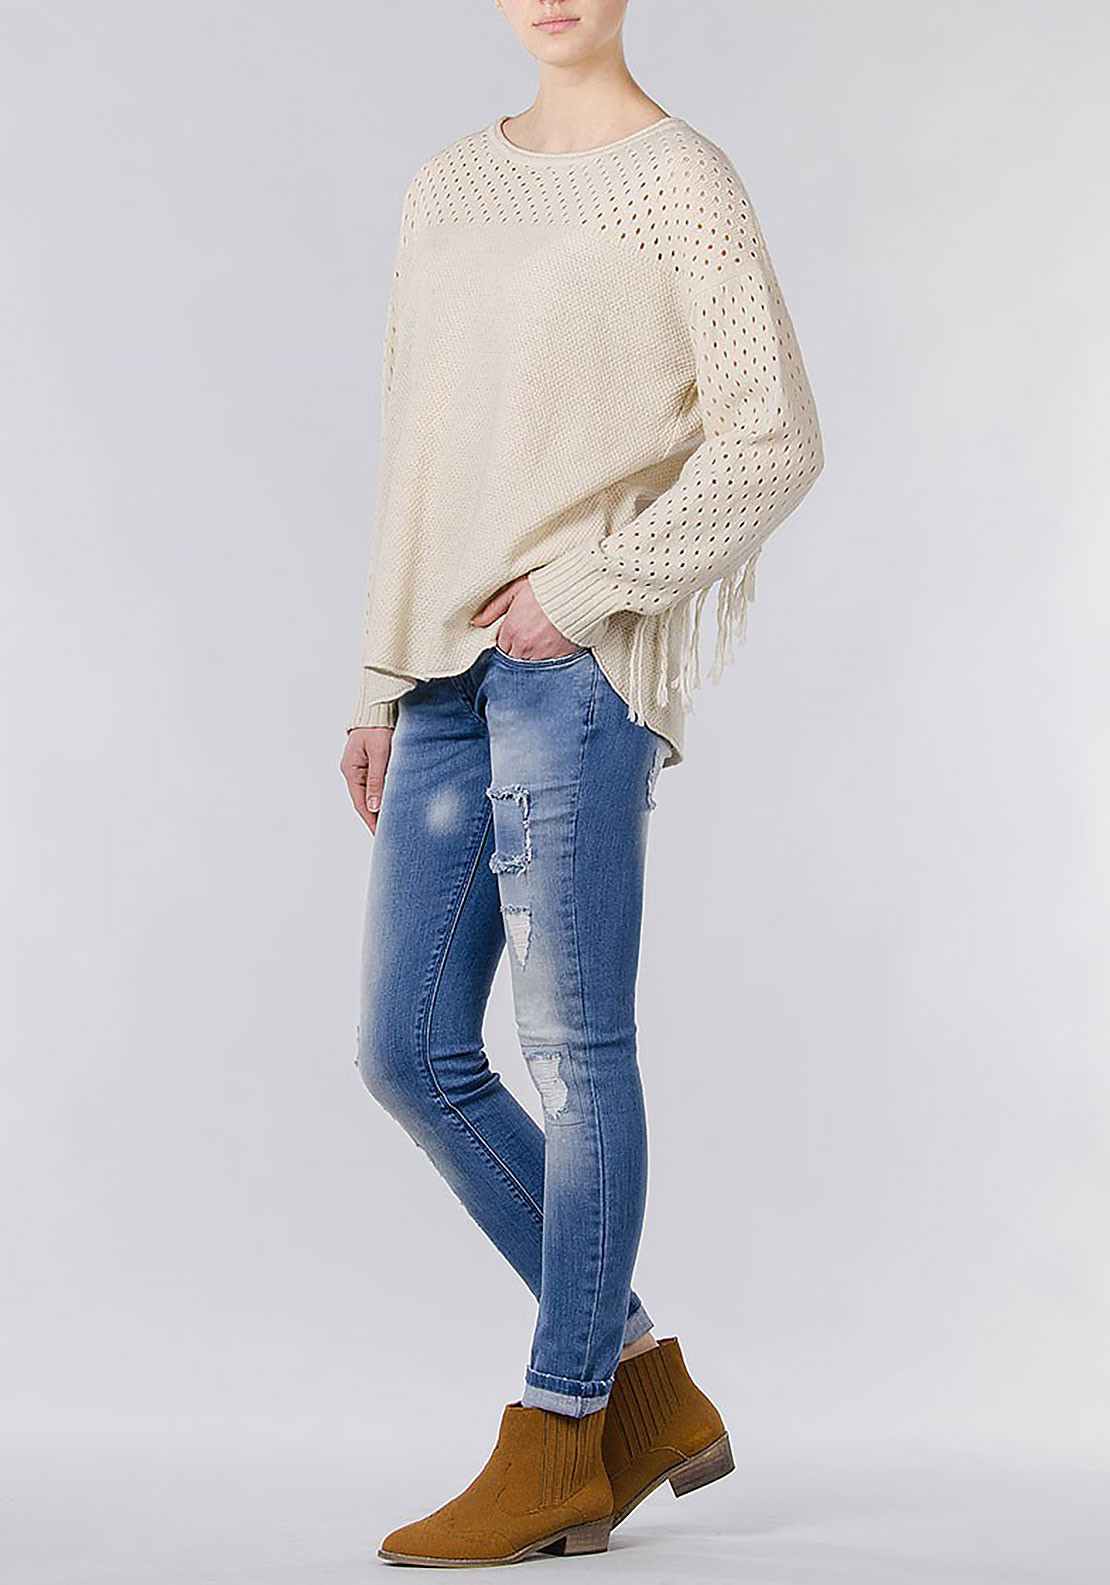 Tiffosi Womens Graz Fringed Knitted Jumper, Beige